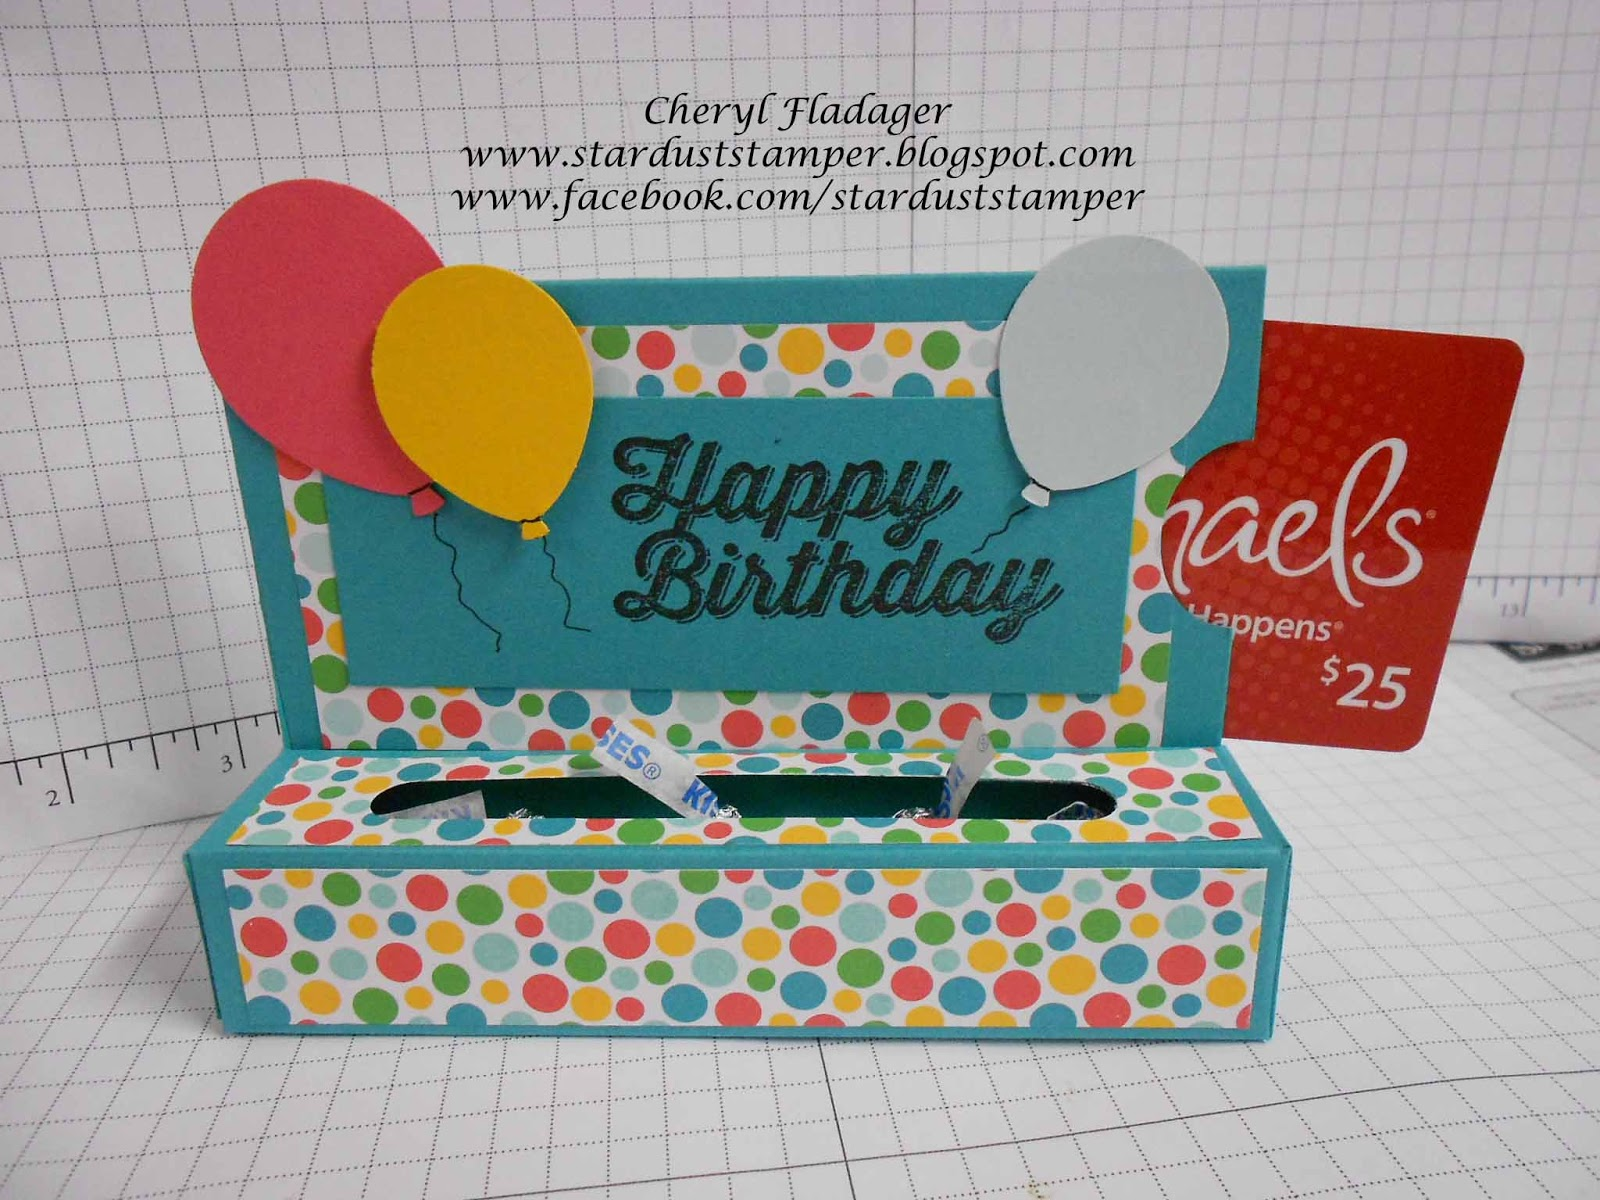 Cheryl star dust stamper birthday gift card box holderby cheryl i wanted to put together a video on how to create this adorable little gift card box but with me taking my preschool course and taking care of my wonderful kristyandbryce Images